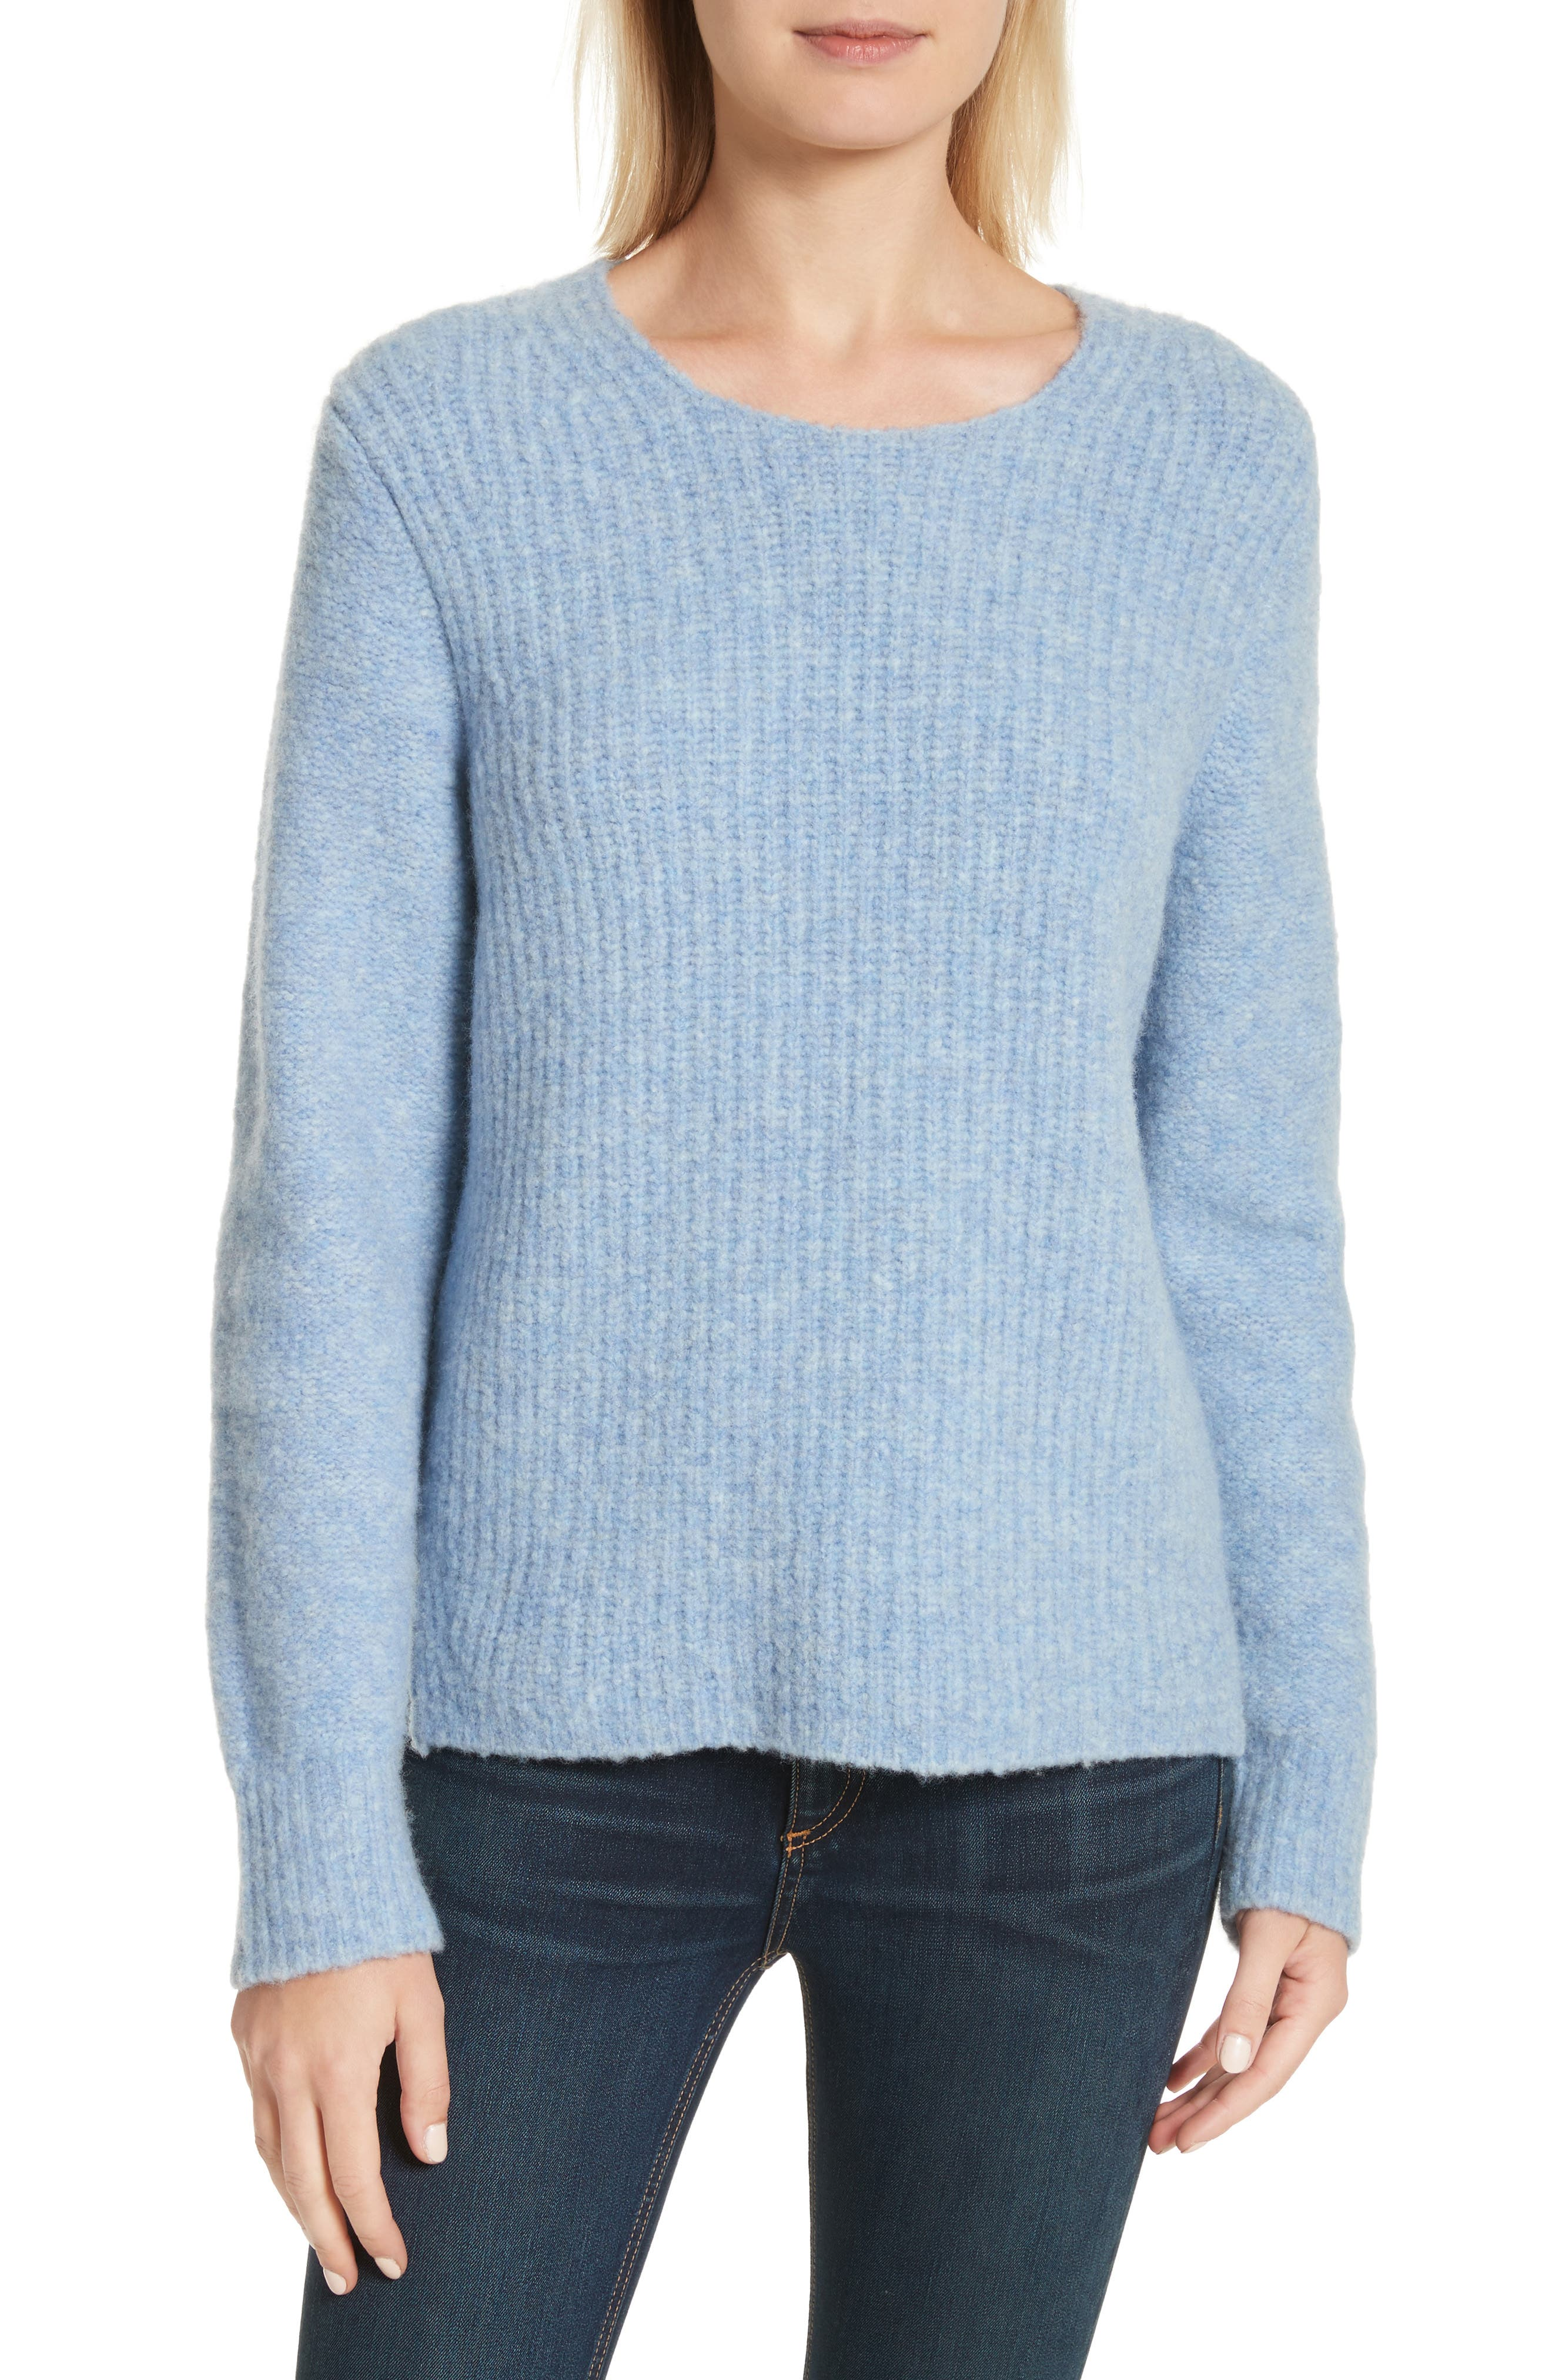 Francie Merino Wool Blend Sweater,                             Main thumbnail 1, color,                             Light Blue